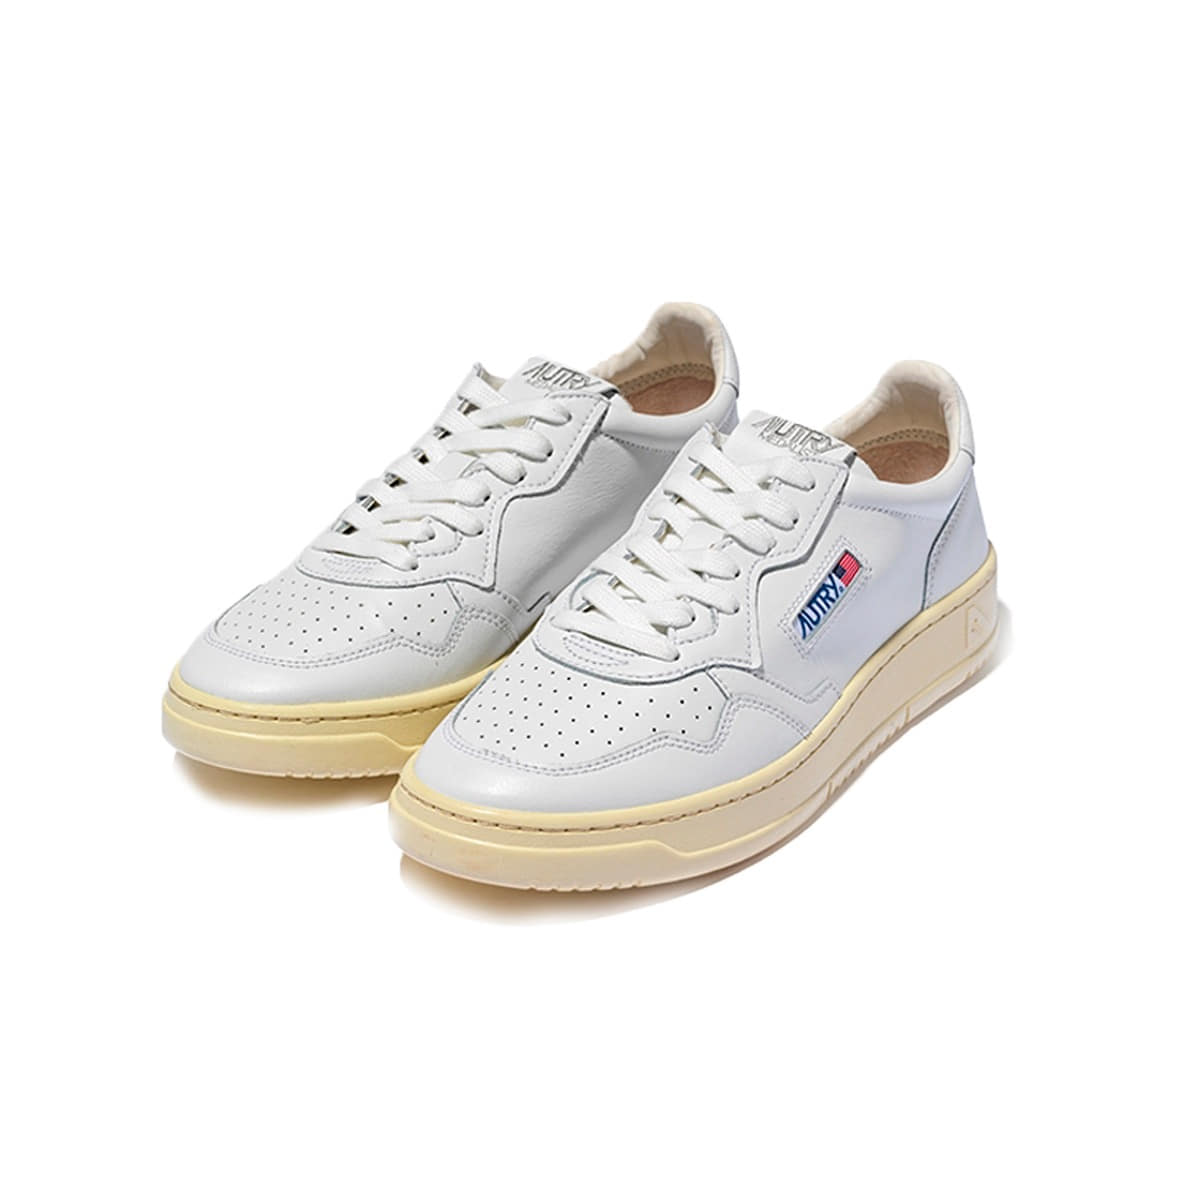 [AUTRY] MEDALIST SNEAKERS GOAT/GOAT 'WHITE'